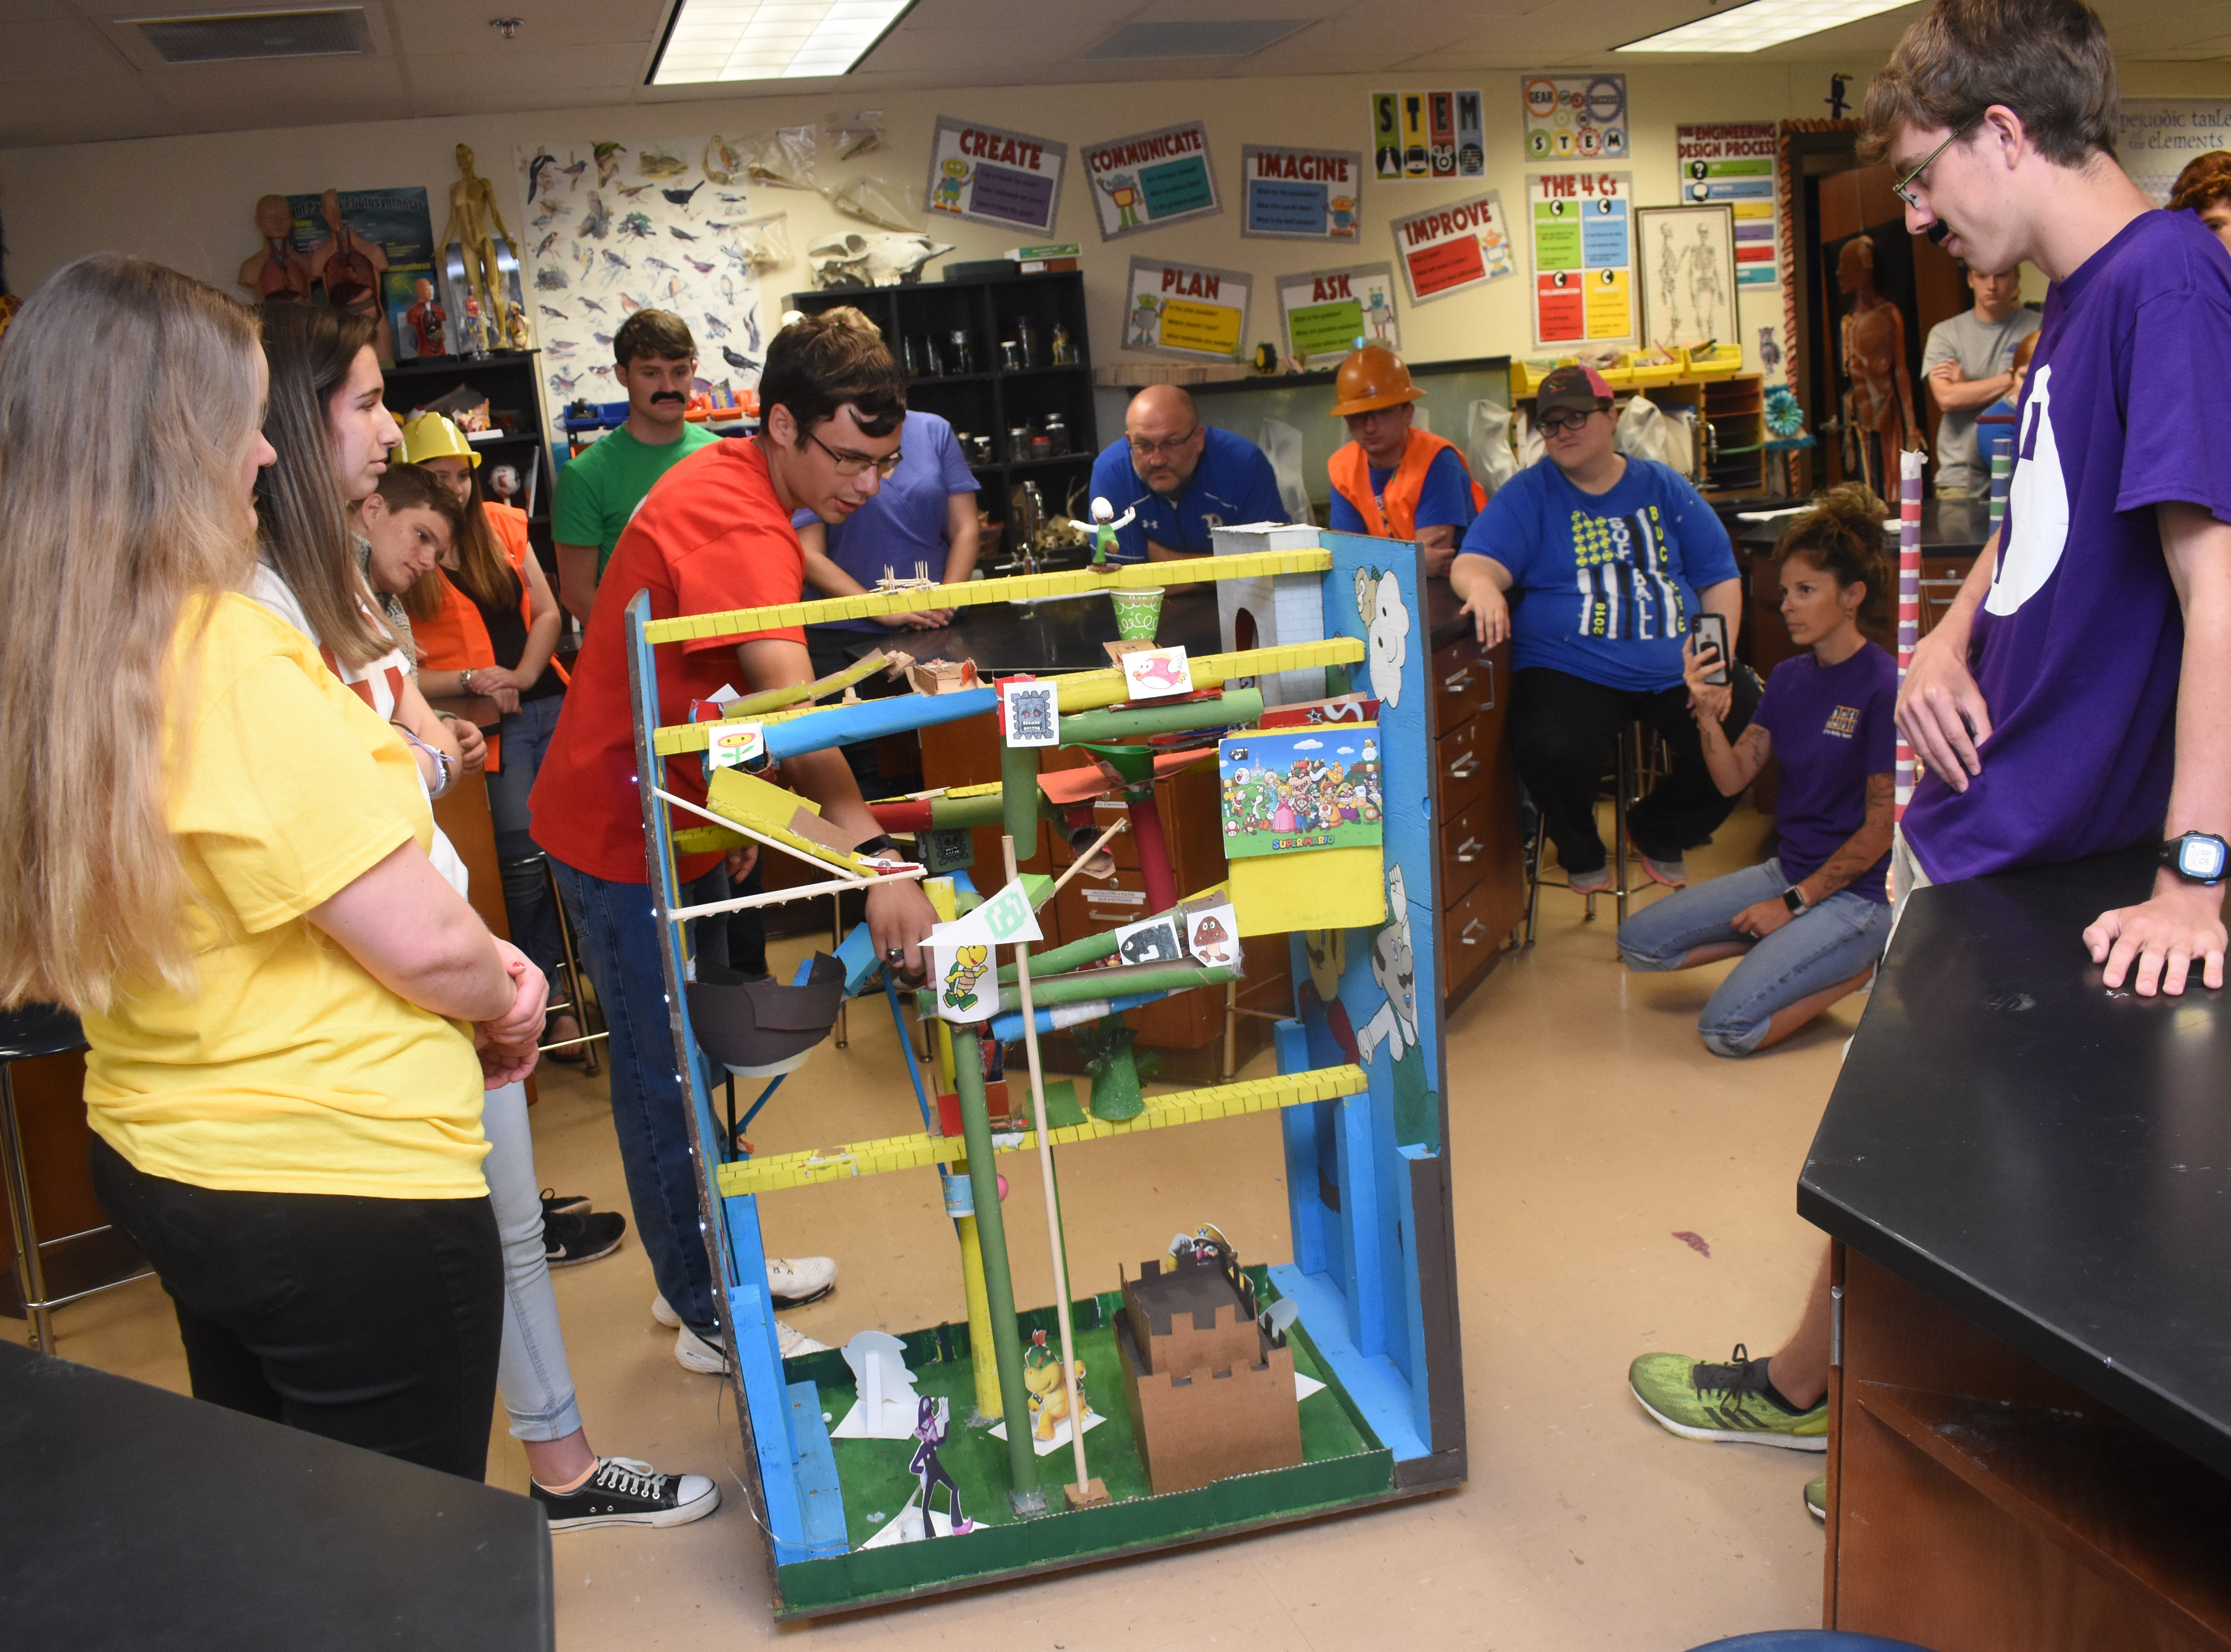 Buckeye High School senior Evan Norris (in red shirt) explains to judges how the Rube Goldberg machine he and his group created works. The theme for their machine was based on the video game Super Mario Bros. The end result was for the machine to raise a flag. Students in Lacey Hoosier's science class applied S.T.E.M. principles (Science. Technology. Engineering. Math.) in creating Rube Goldberg machines. The Website www.rubegoldberg.com says Rube Goldberg machines are machines designed to do simple tasks in a complex manner. For example, a simple task for one of the groups in the class was getting the machine to put an Alka-Seltzer tablet in a cup of water. The machines were designed by inventor and cartoonist Rube Goldberg.